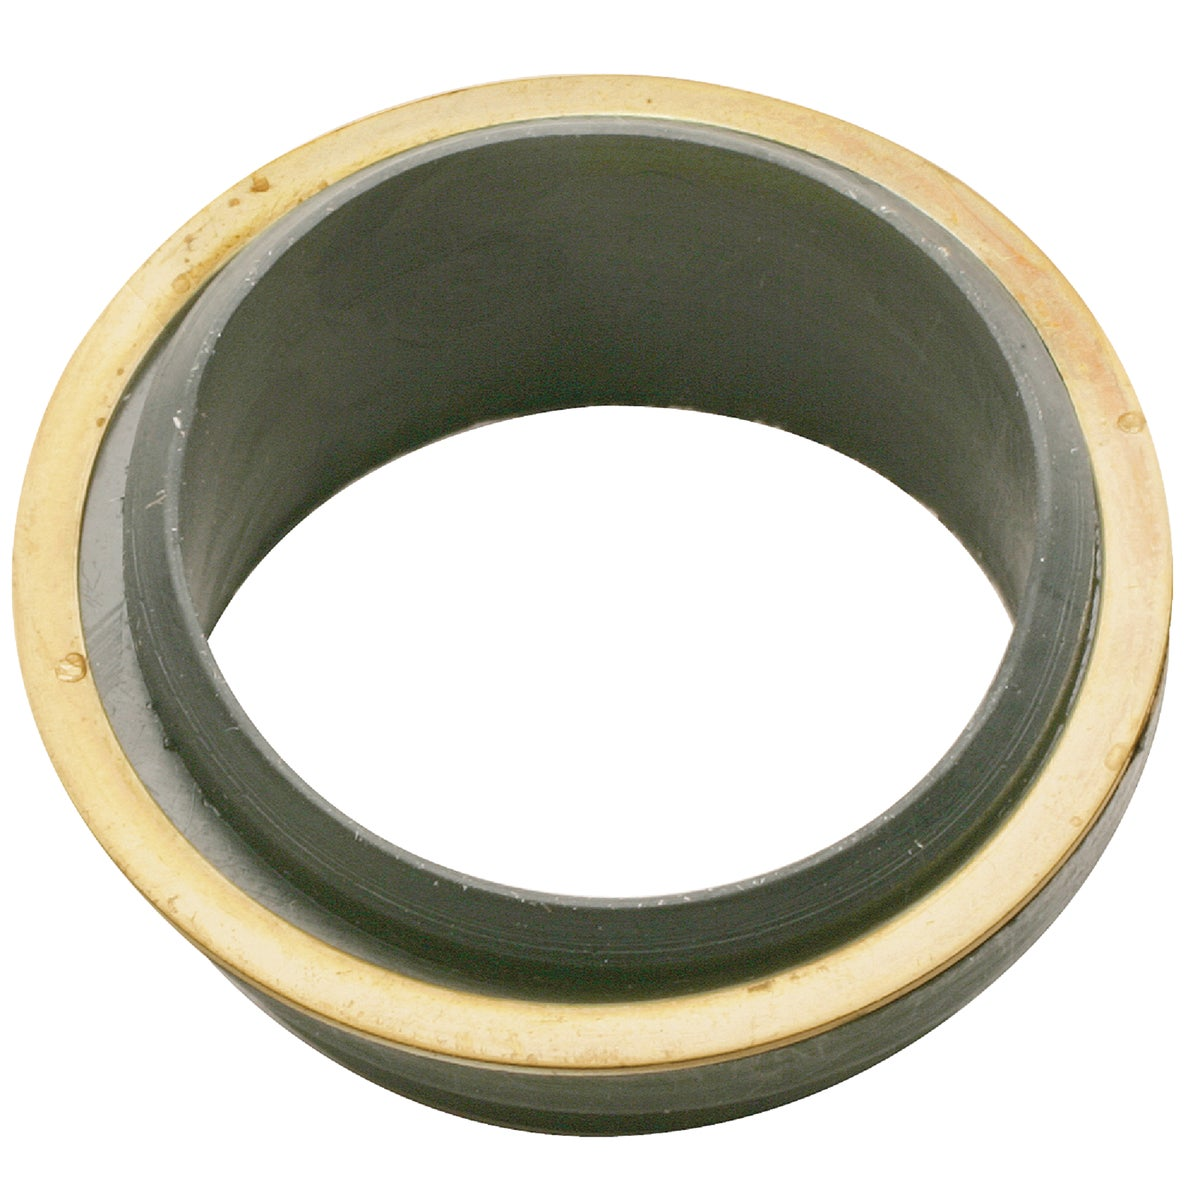 WST KING DISPOSER GASKET - 445630 by Plumb Pak/keeney Mfg